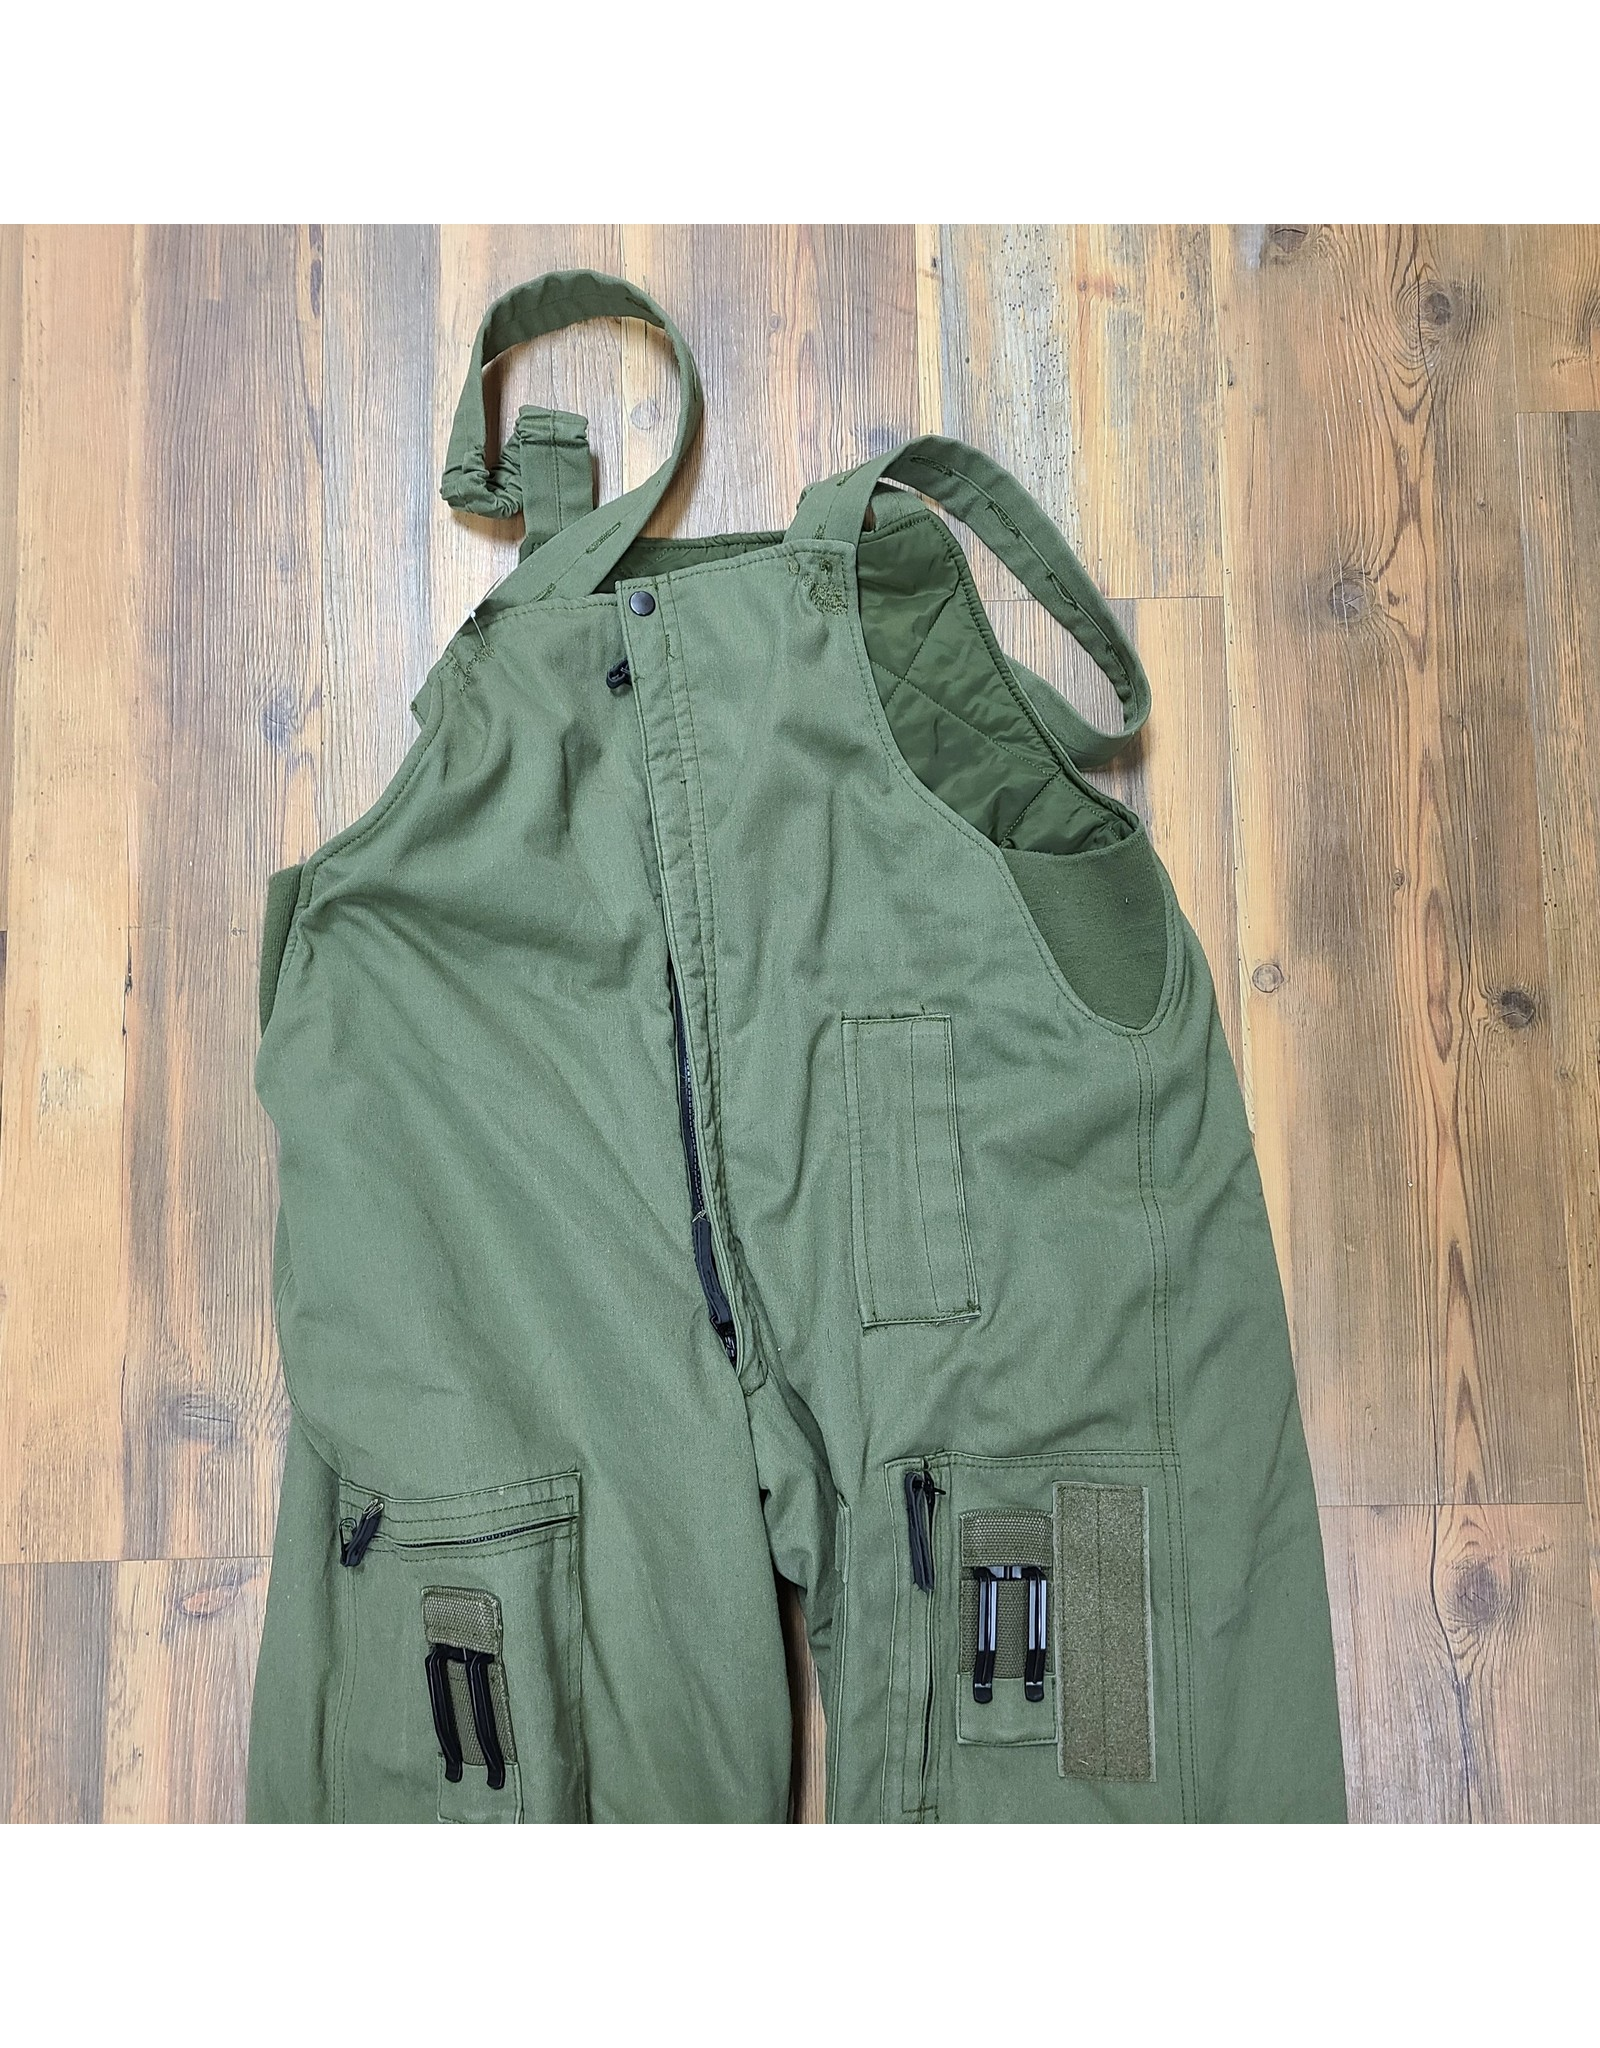 CANADIAN SURPLUS INSULATED AIRFORCE BIB PANT OLIVE 7340 TALL LARGE